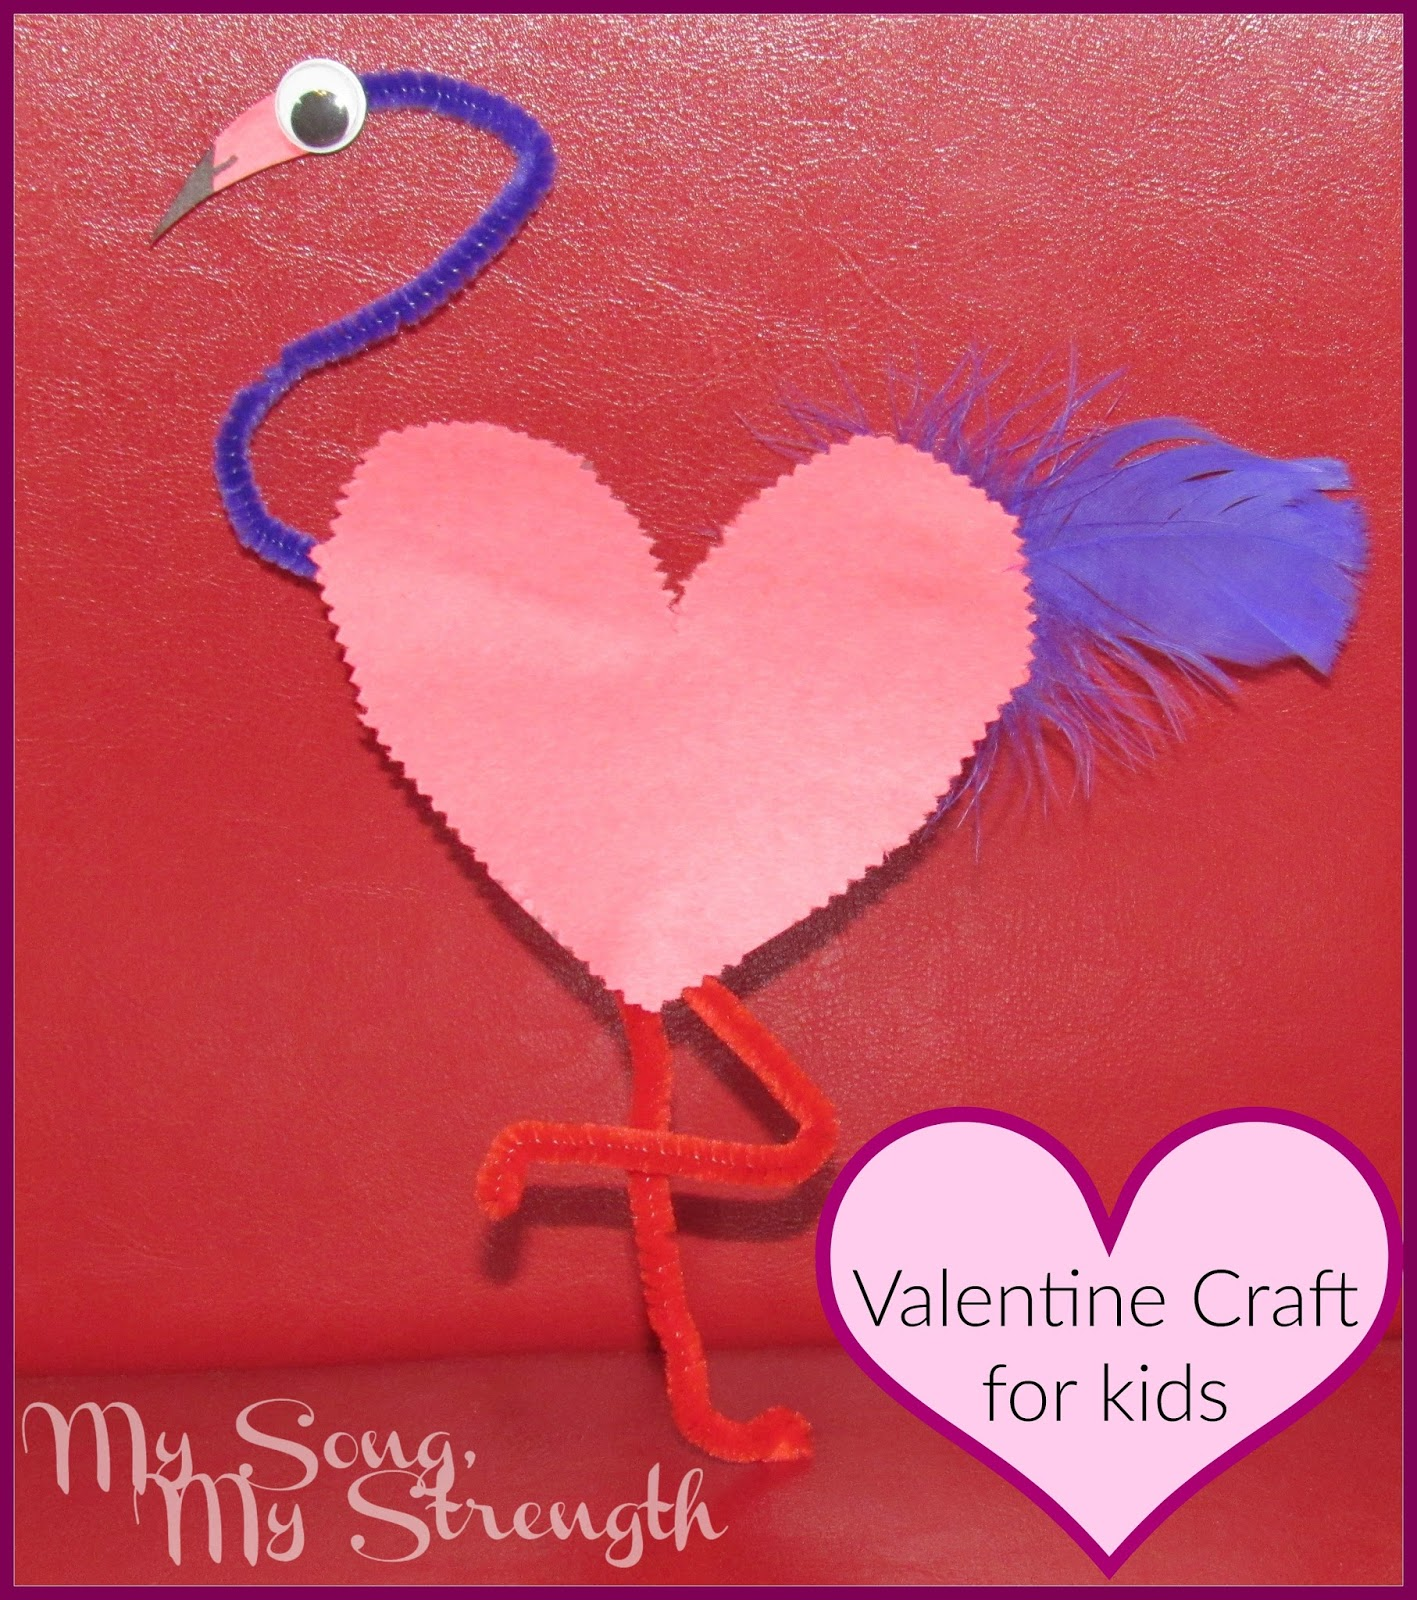 My song my strength flamingo valentine 39 s day craft for kids for Valentine day crafts for kids